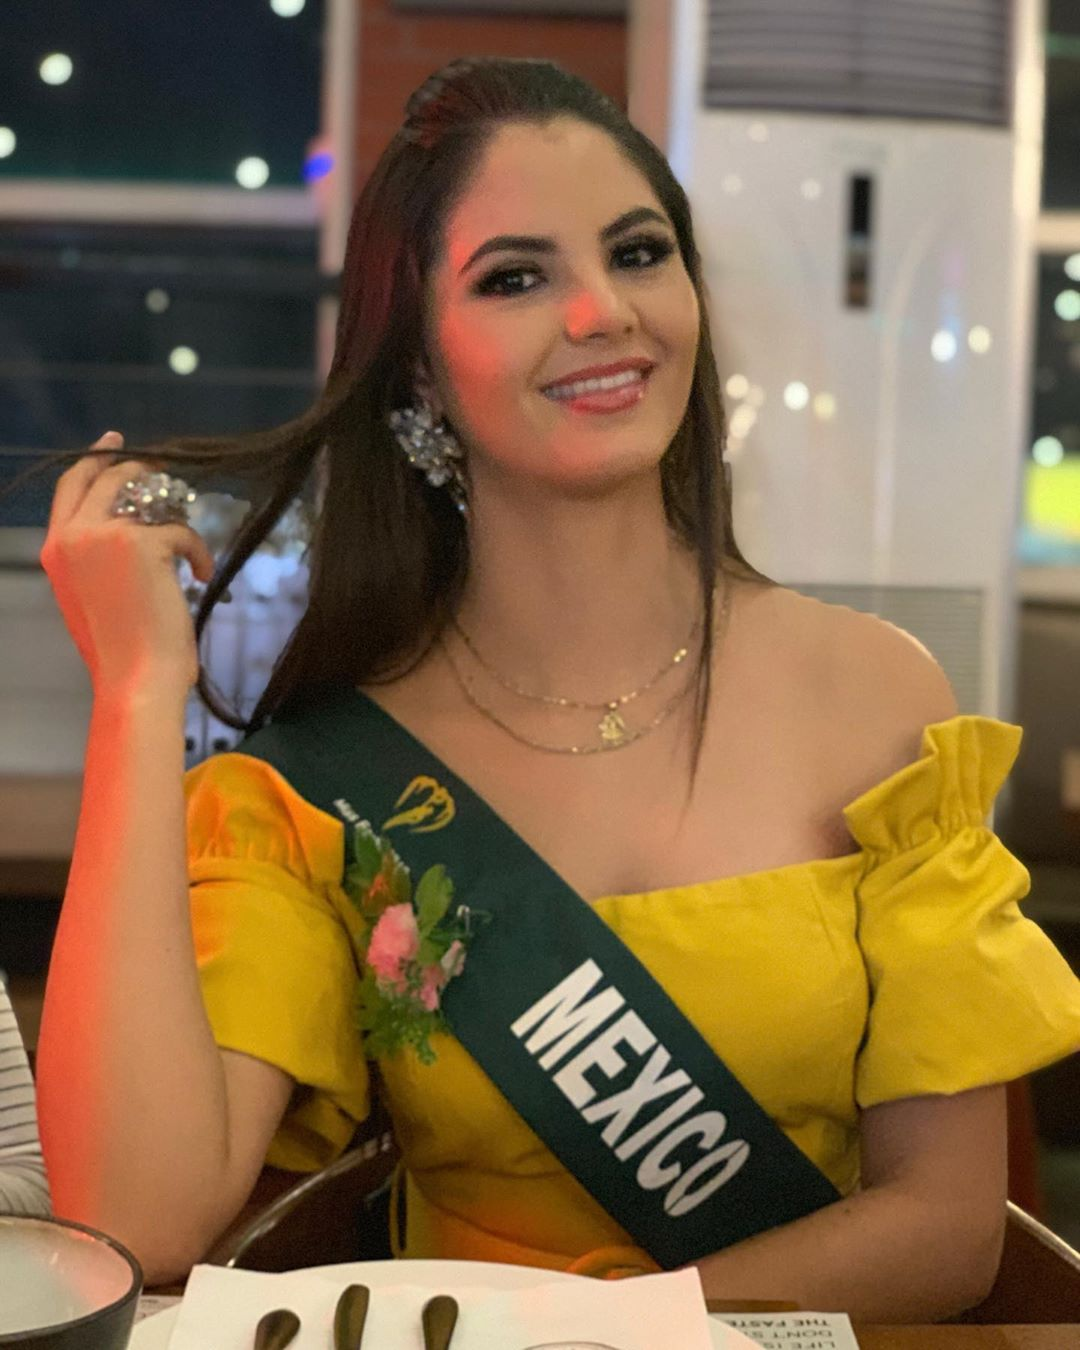 hilary islas, miss earth mexico 2019. - Página 14 72746310